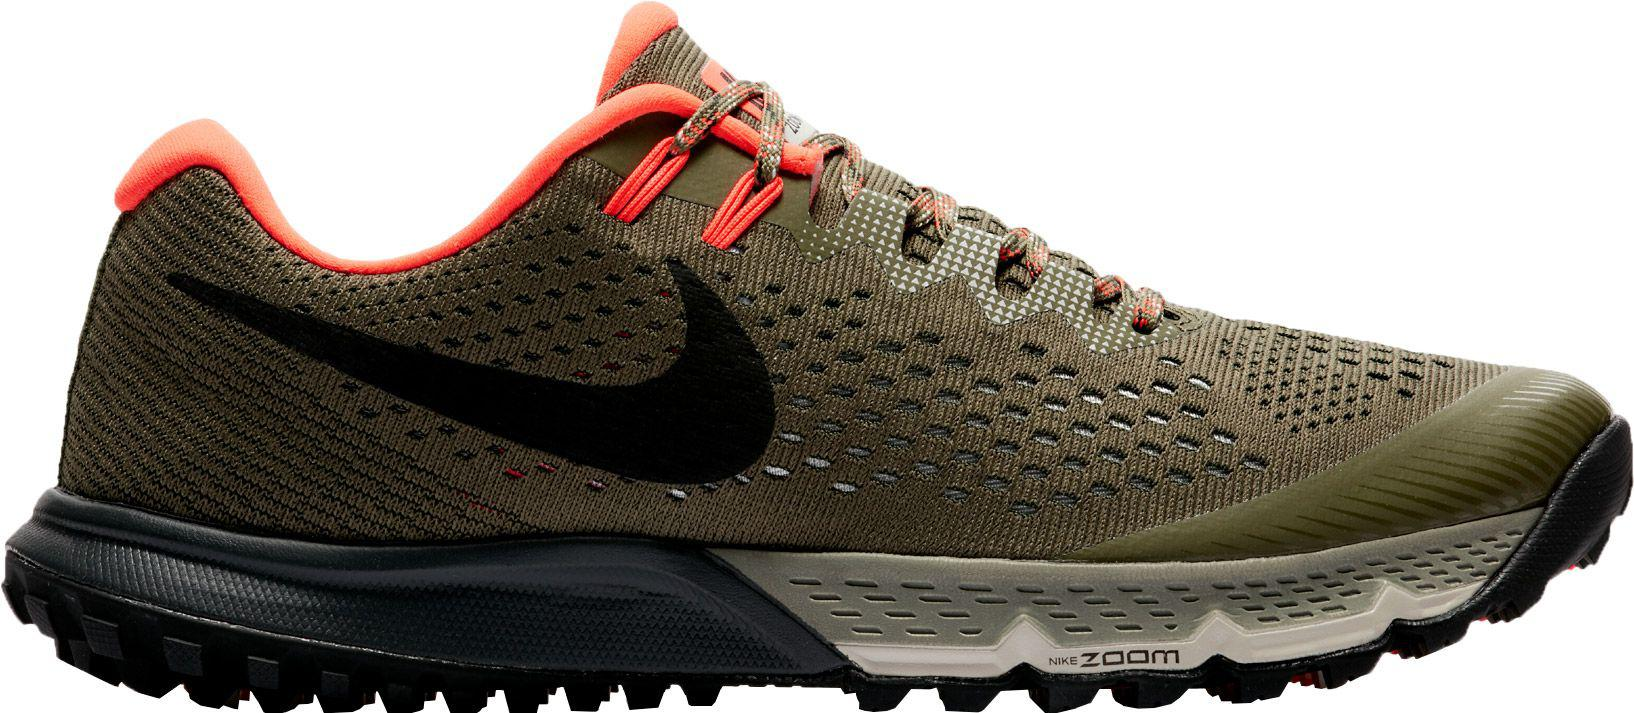 eb5734d6cdb Nike - Multicolor Air Zoom Terra Kiger 4 Trail Running Shoes for Men - Lyst